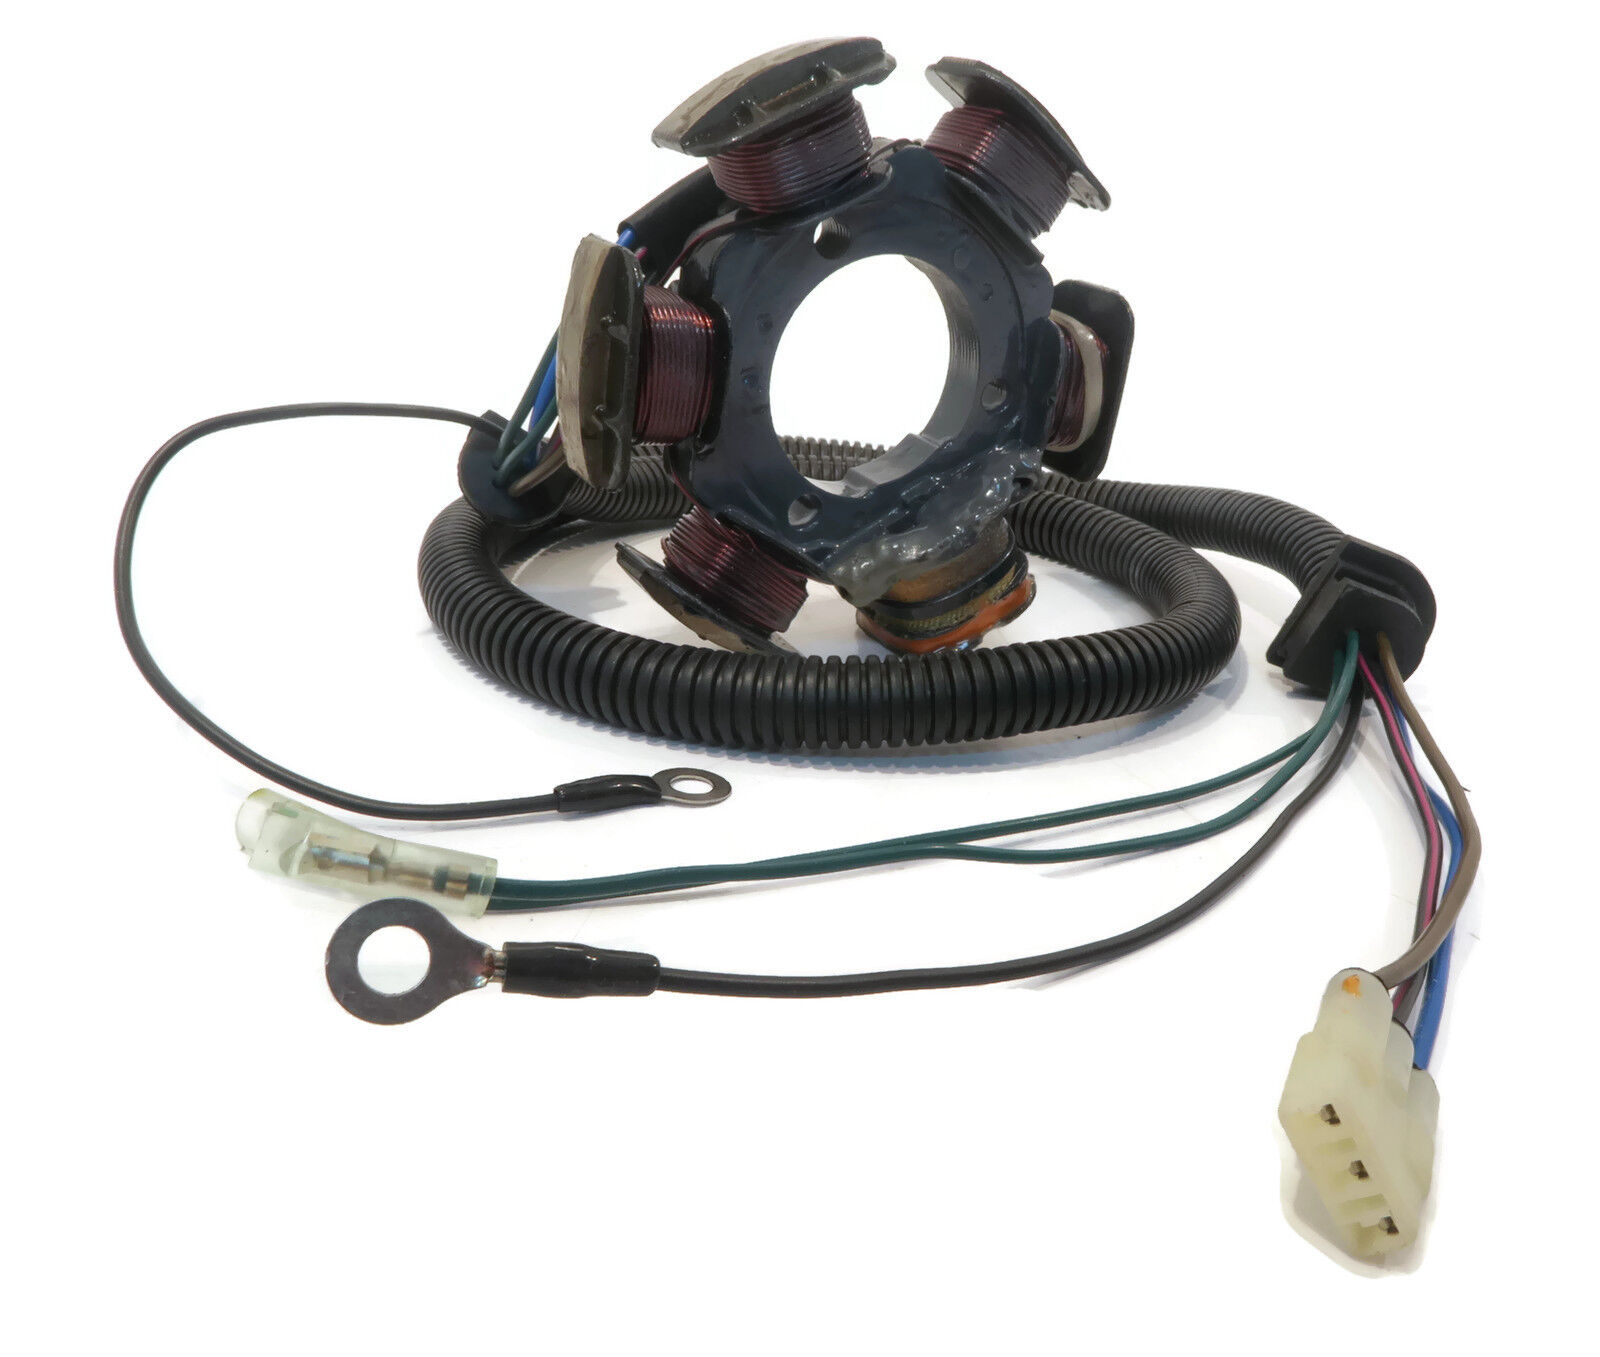 Details about IGNITION STATOR fits Yamaha WaveRunner 1997 1998 1999 GP1200  XL1200 Wave Runner